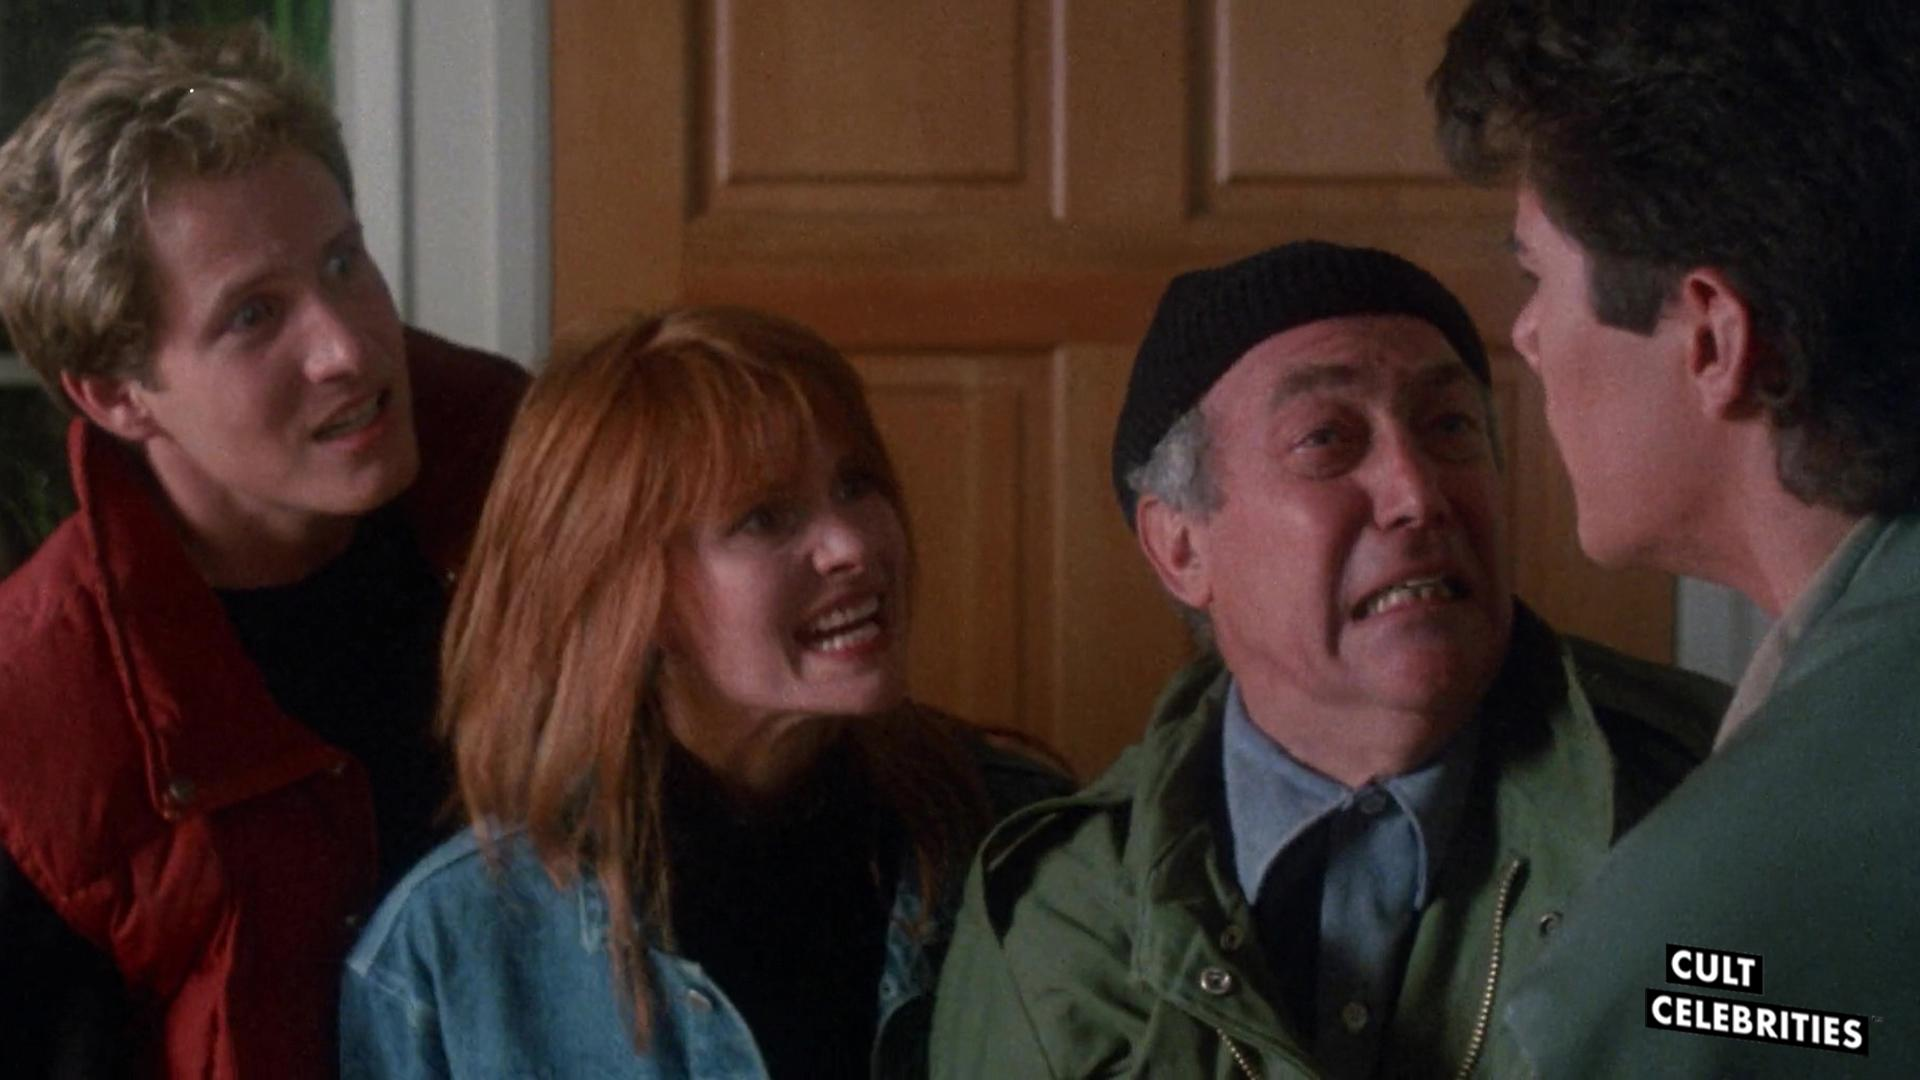 Suzanne Snyder, Dana Ashbrook, Thom Matthews and James Karen in Return of the Living Dead II (1988)